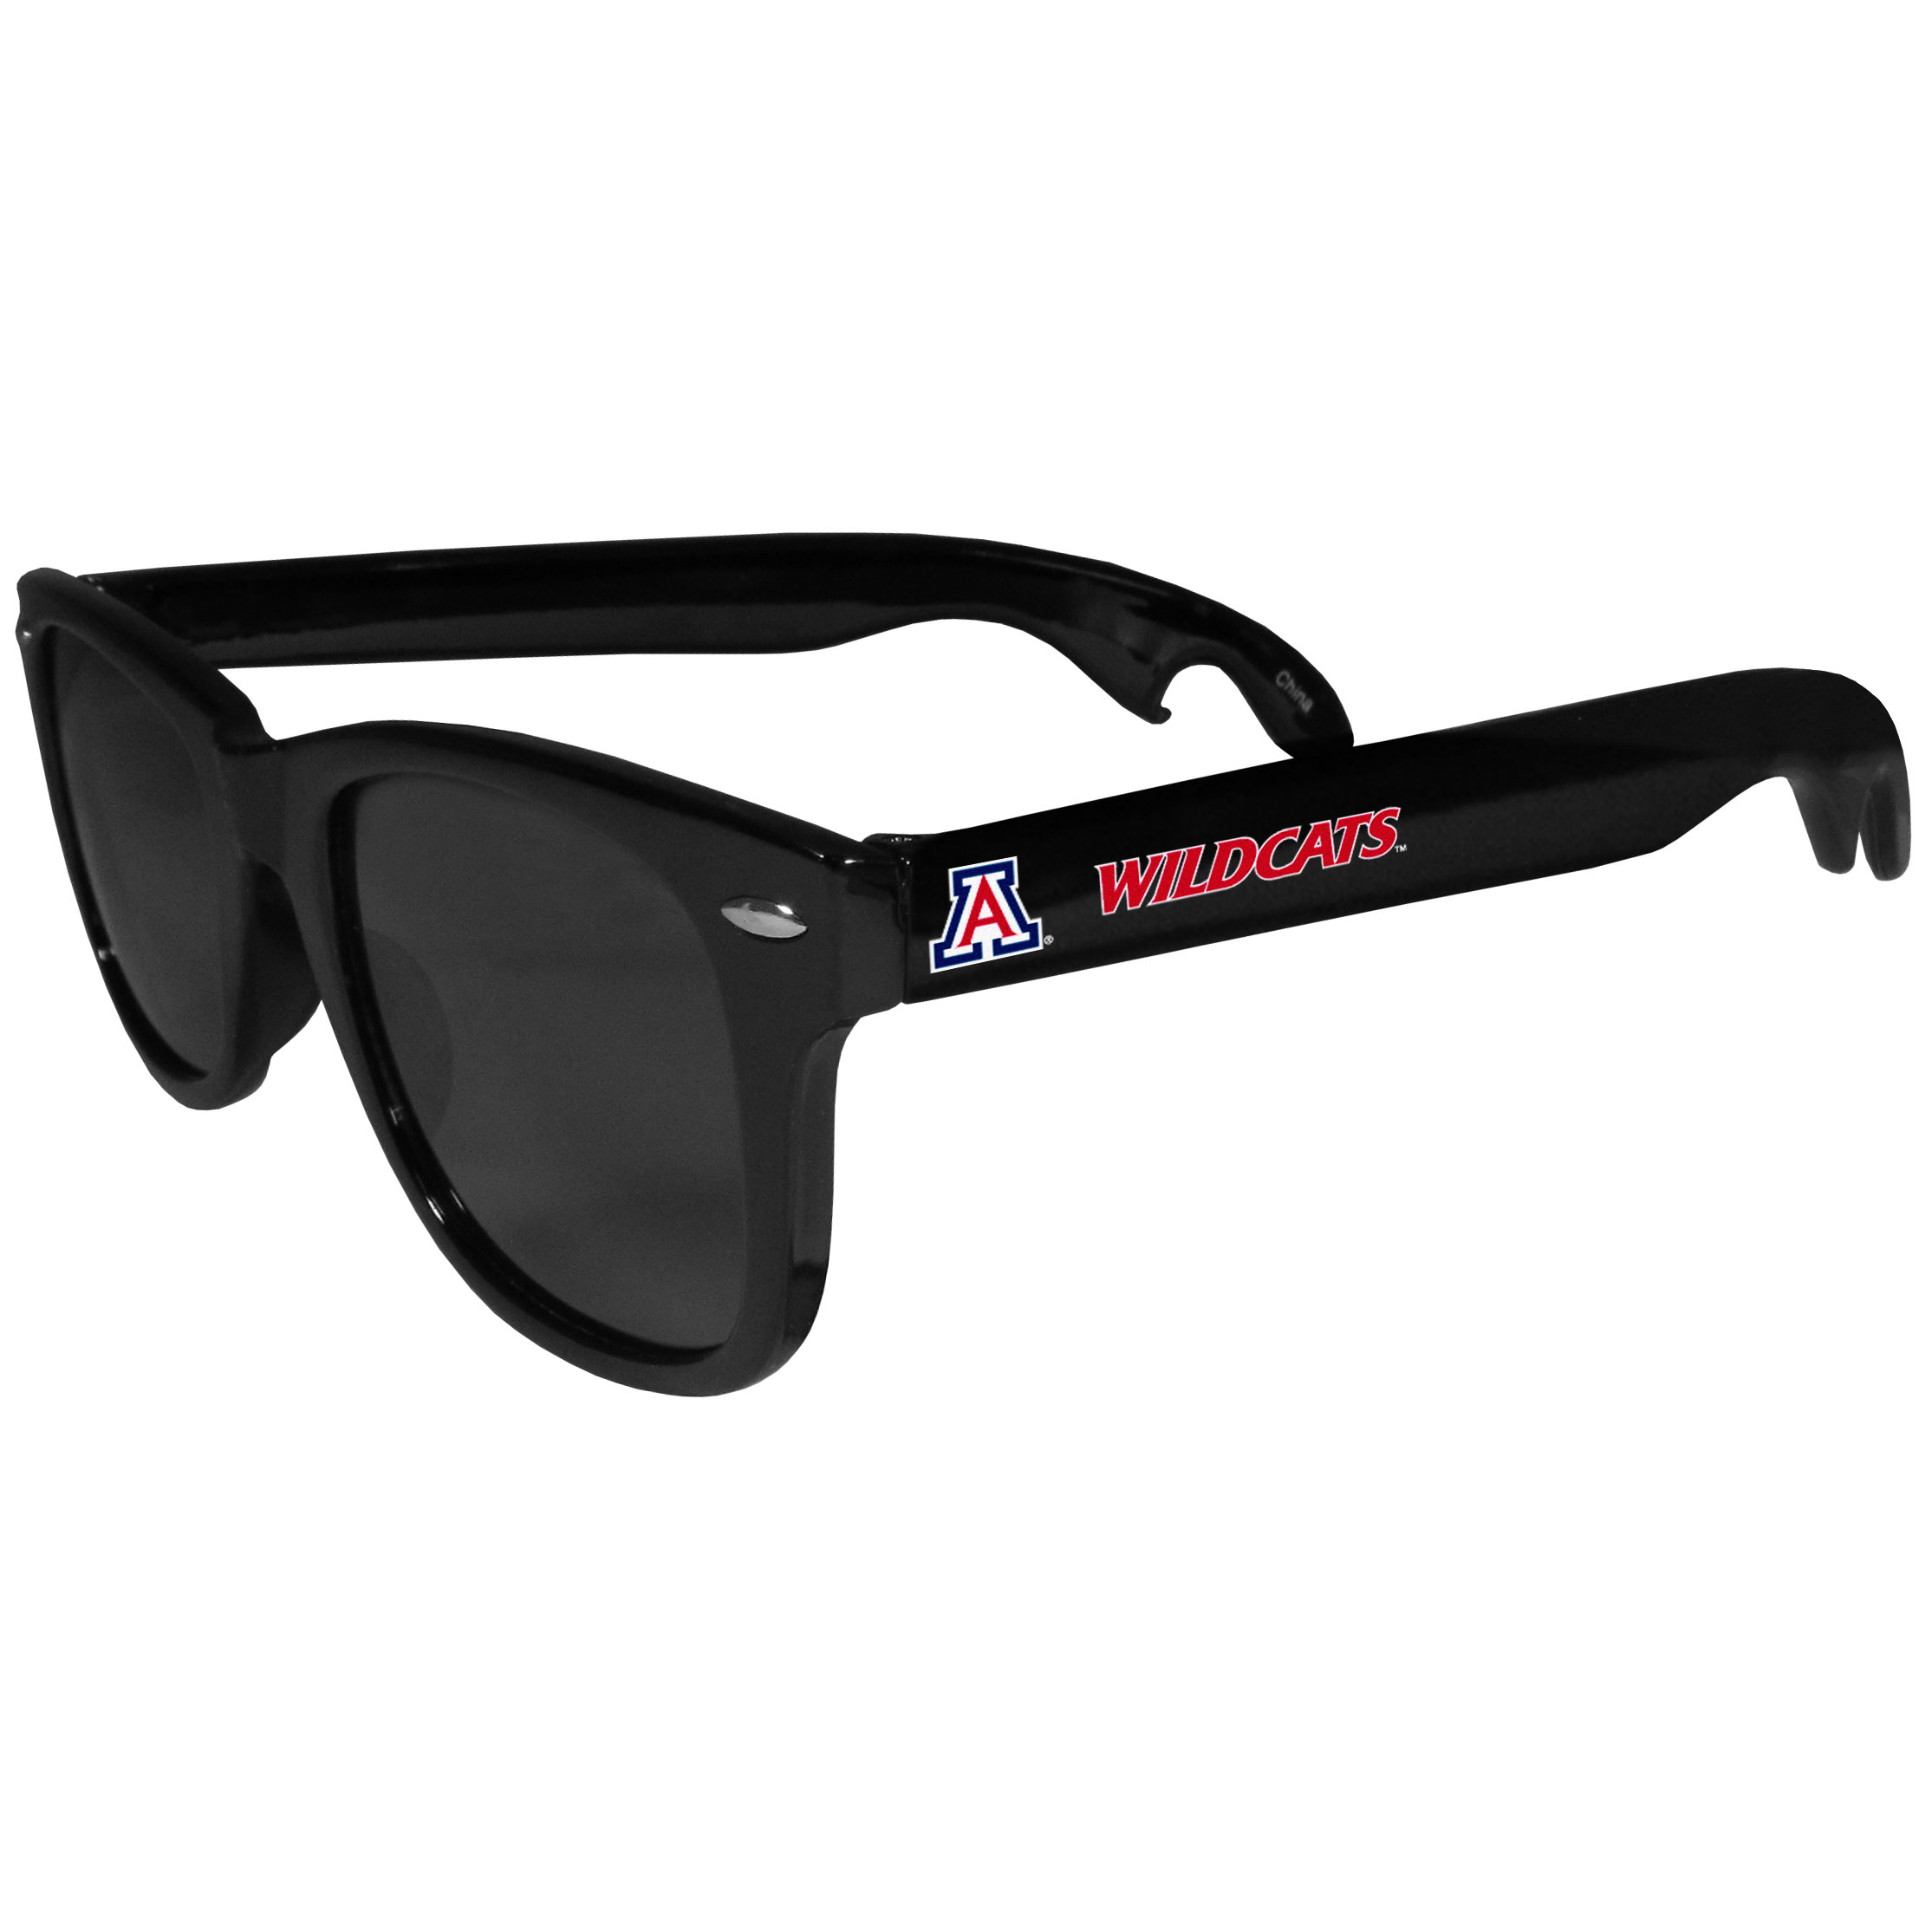 Arizona Wildcats Beachfarer Bottle Opener Sunglasses - Seriously, these sunglasses open bottles! Keep the party going with these amazing Arizona Wildcats bottle opener sunglasses. The stylish retro frames feature team designs on the arms and functional bottle openers on the end of the arms. Whether you are at the beach or having a backyard BBQ on game day, these shades will keep your eyes protected with 100% UVA/UVB protection and keep you hydrated with the handy bottle opener arms.